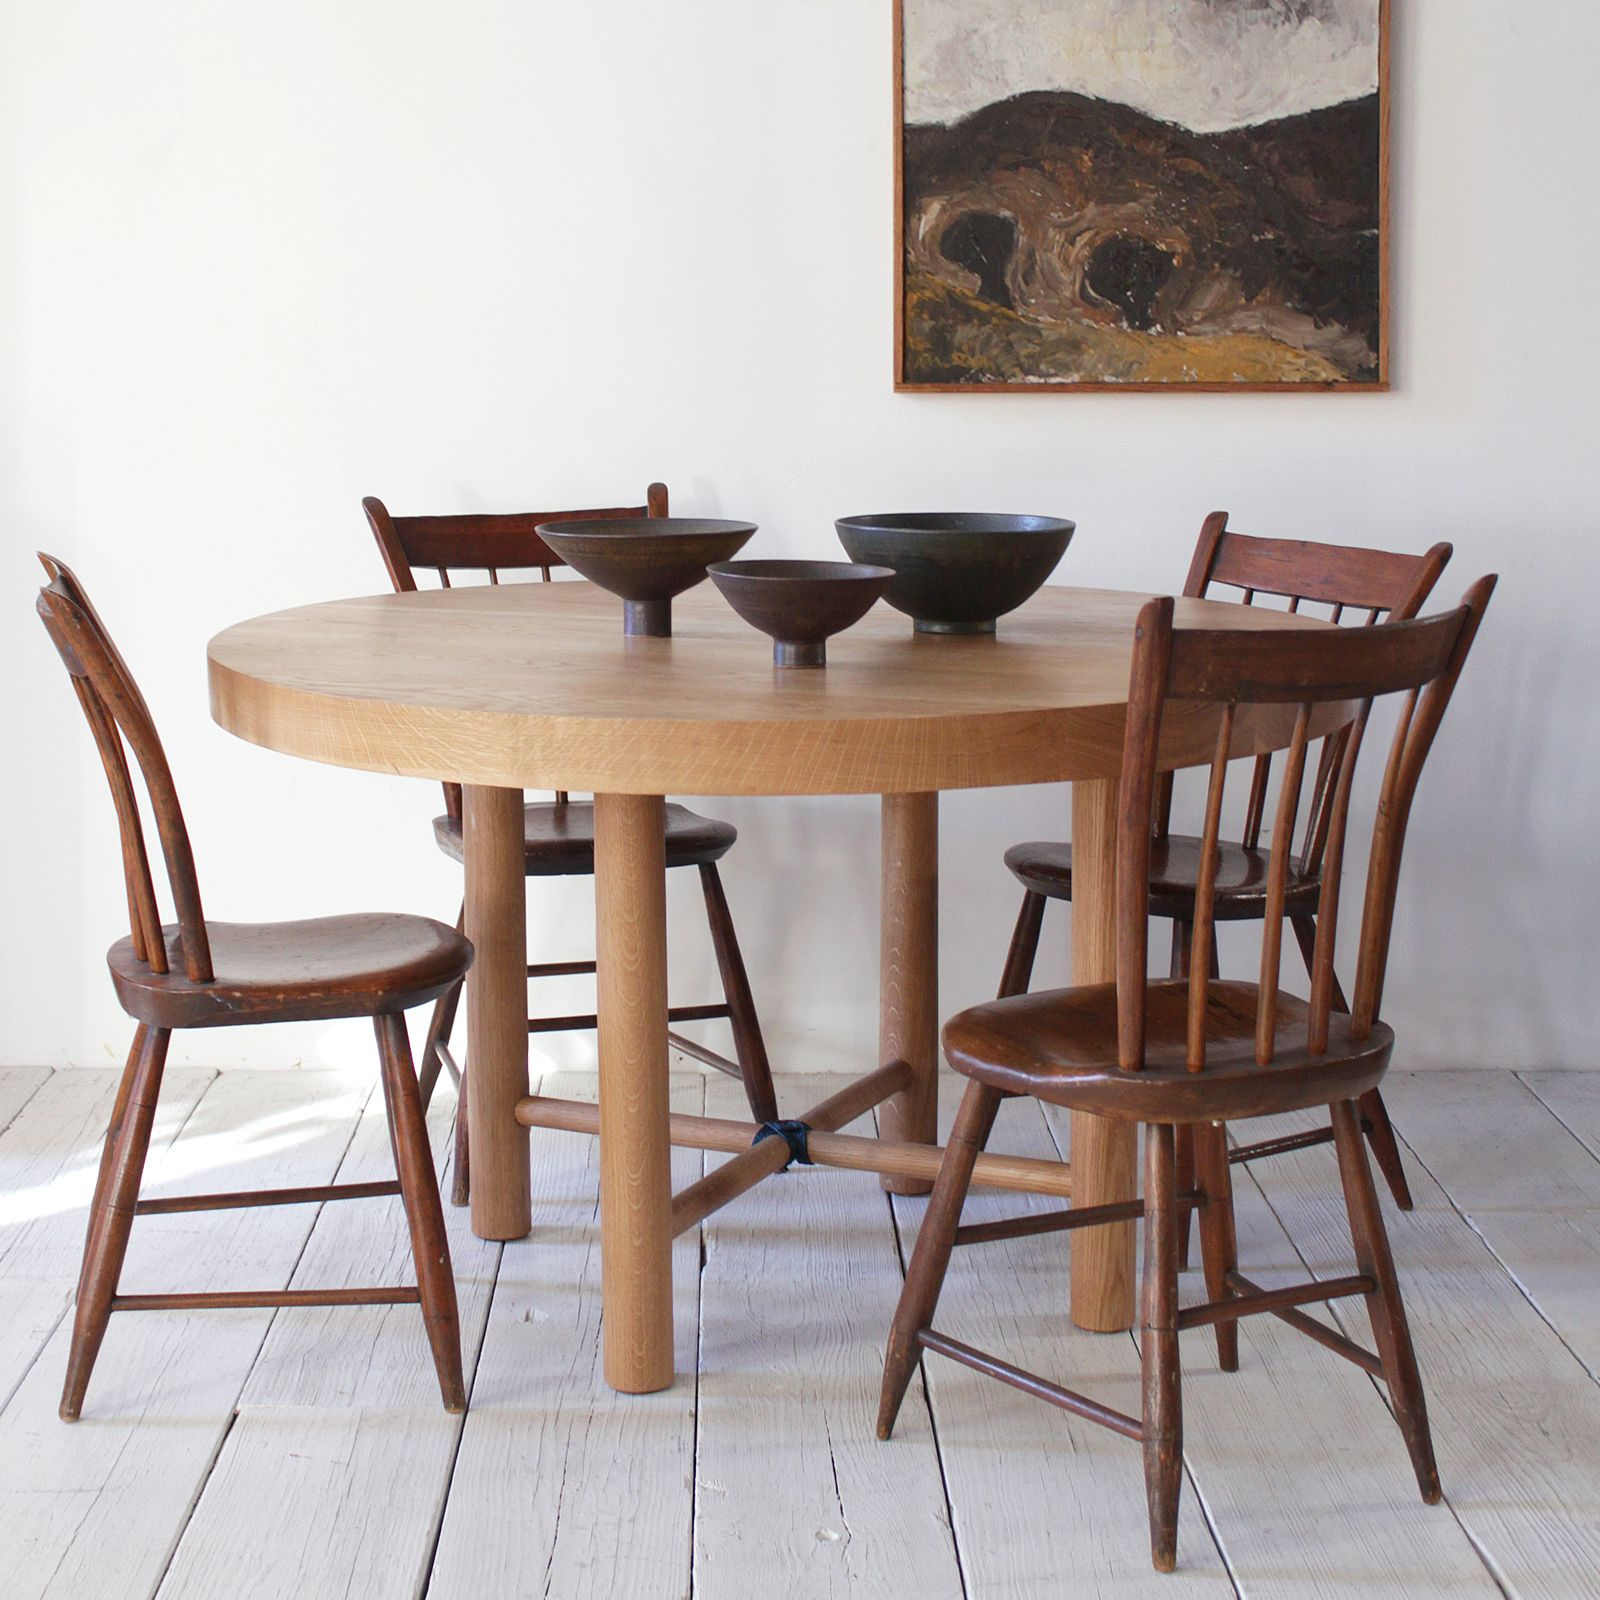 nickey kehoe's latest dining table is the nk 50 round dining table